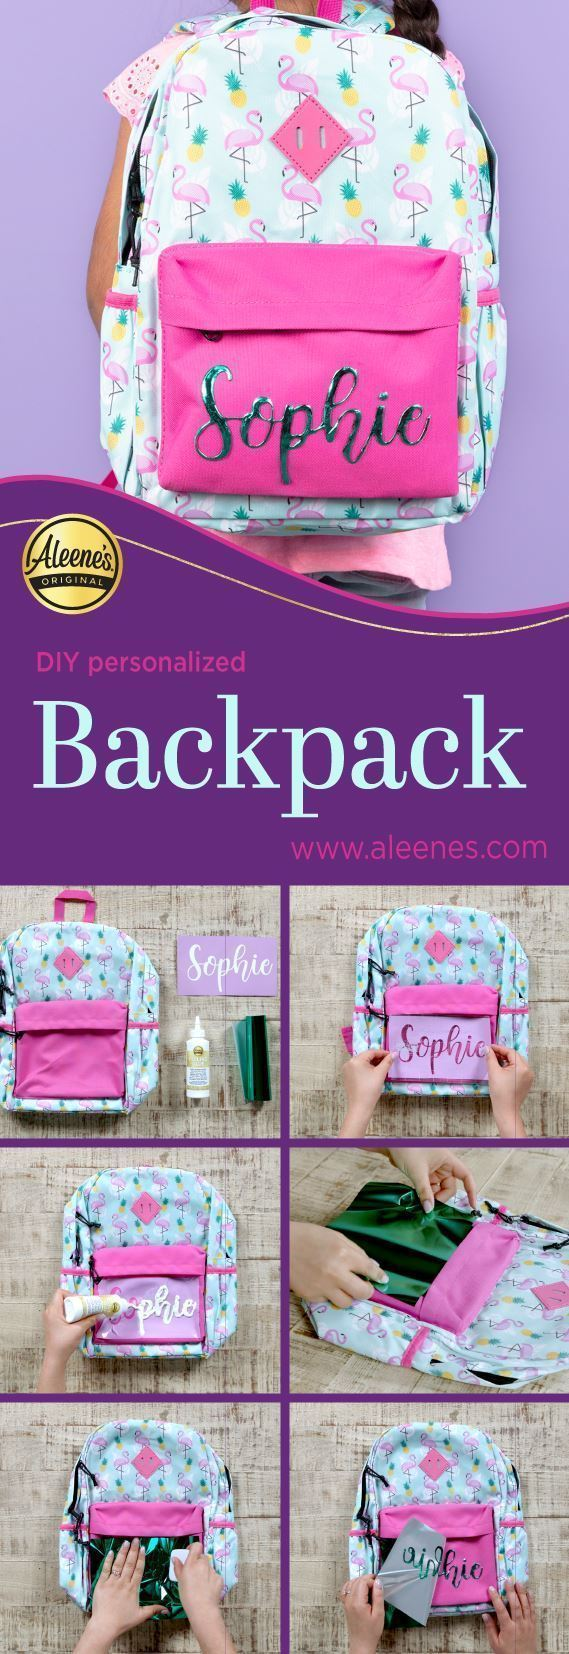 Aleene's Personalized Backpack with Foiling glue